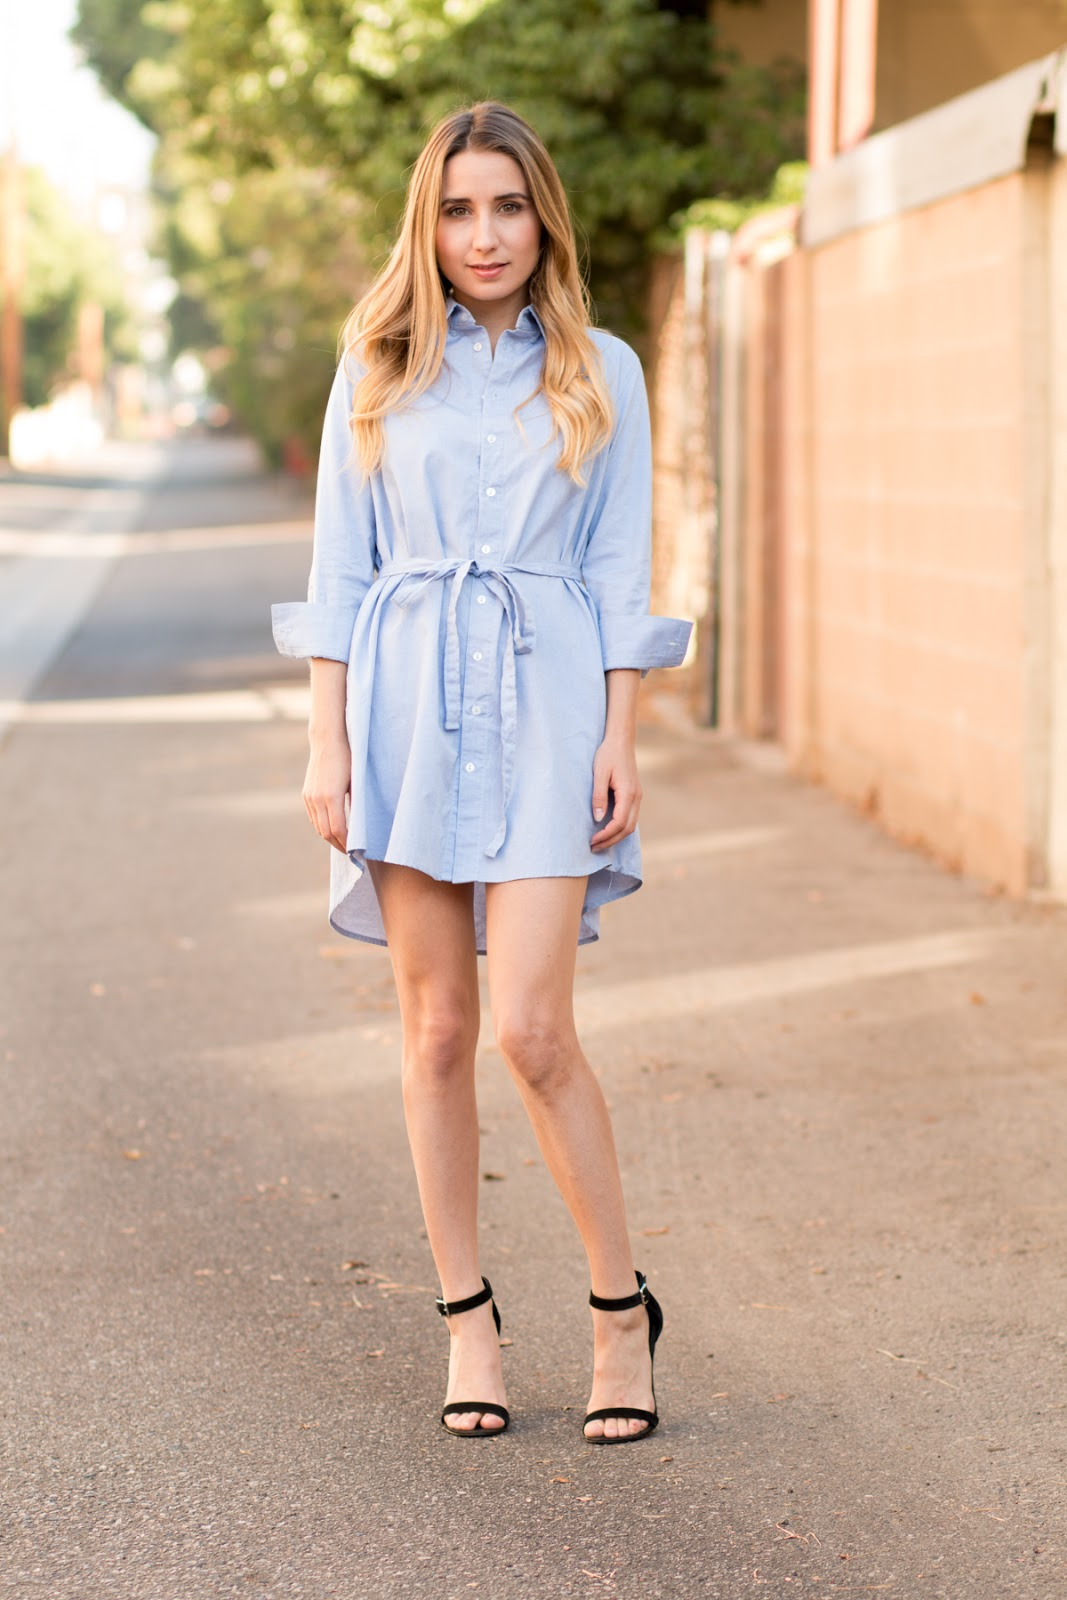 Boyfriend-style clothing is a hot trend—from boyfriend jeans to shirt dresses, it is a fun and flirty look. You love the way you look and feel in your boyfriend's jacket. You love the way you look and feel in your boyfriend's jacket.